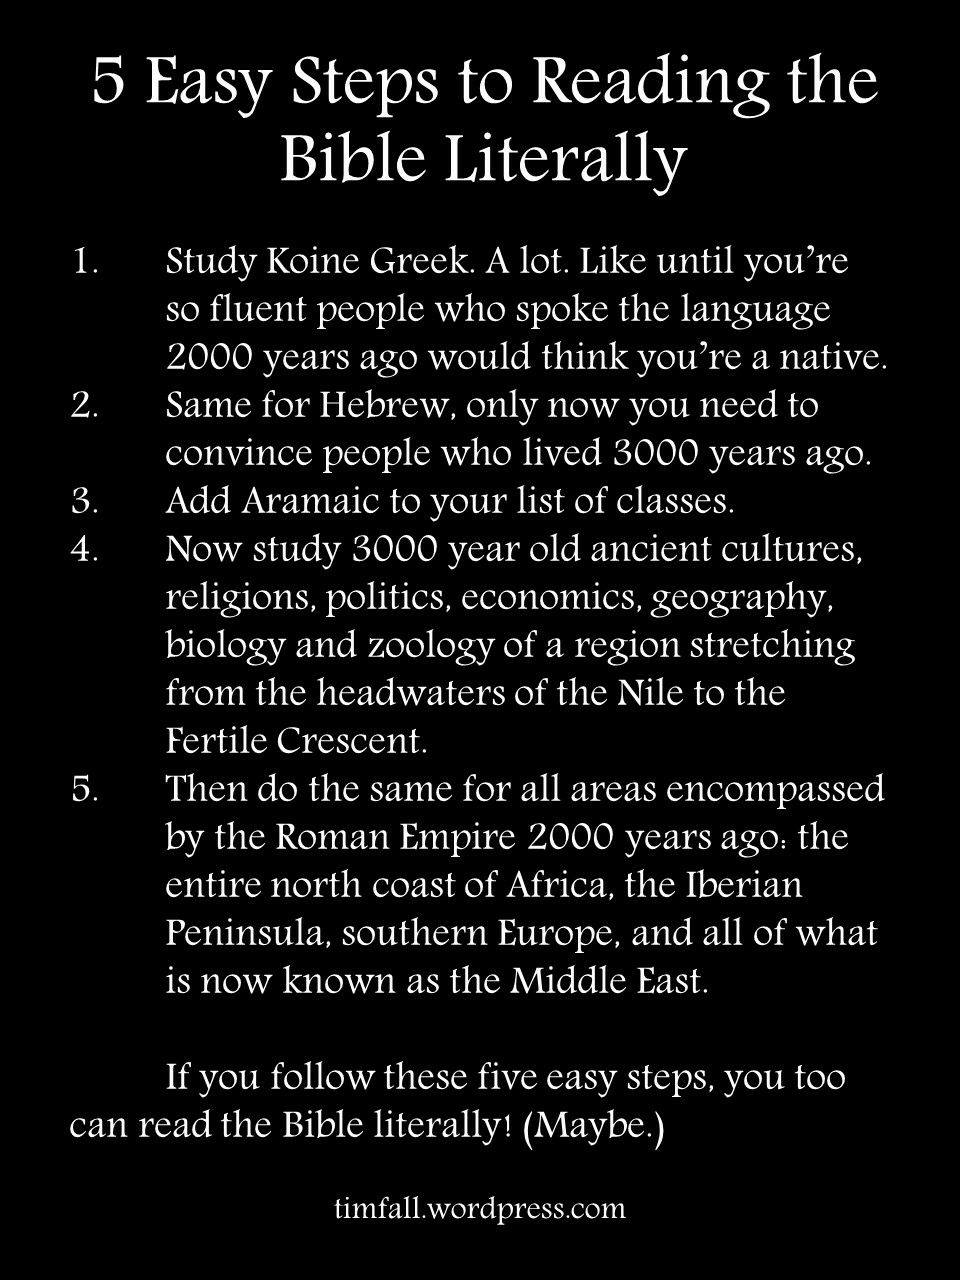 5 easy steps to taking the Bible literally